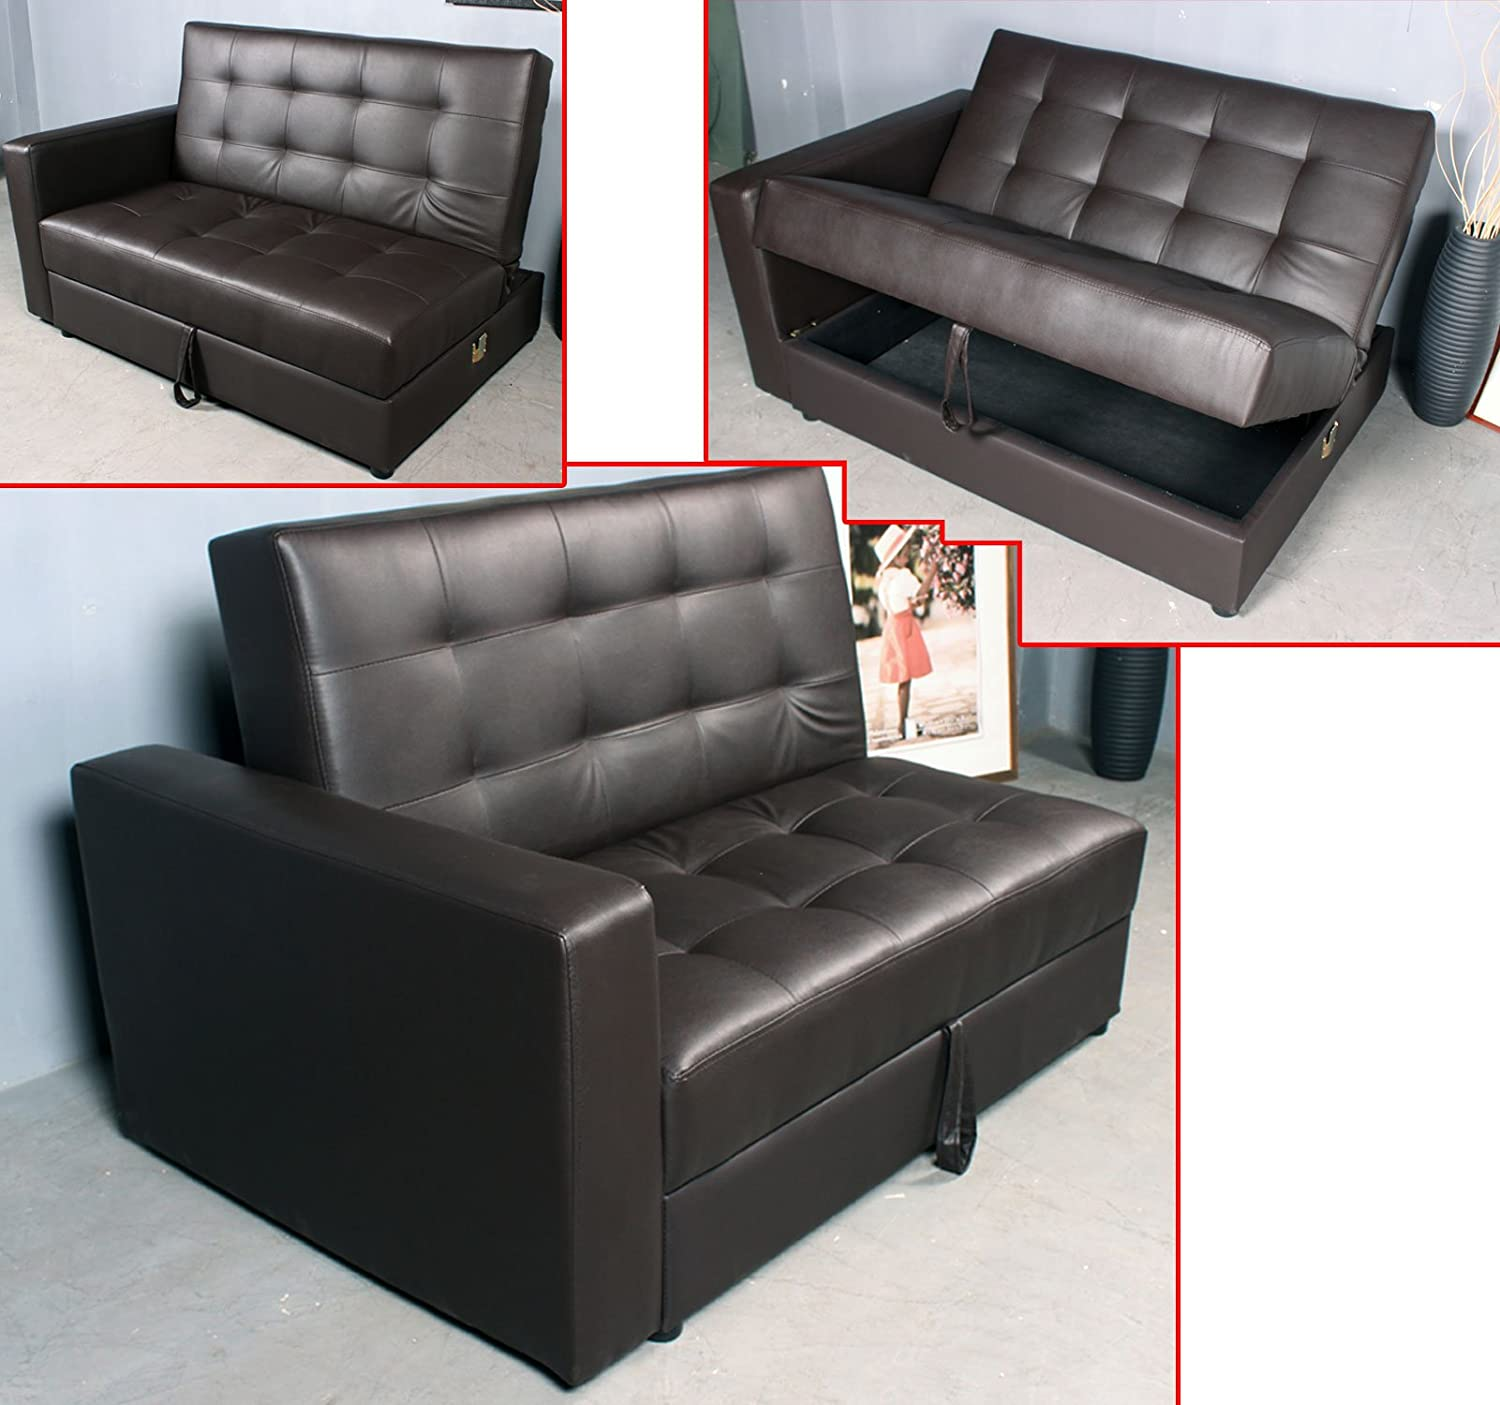 Hom Multi function Fordable Leather Sofa Bed Set Loveseat